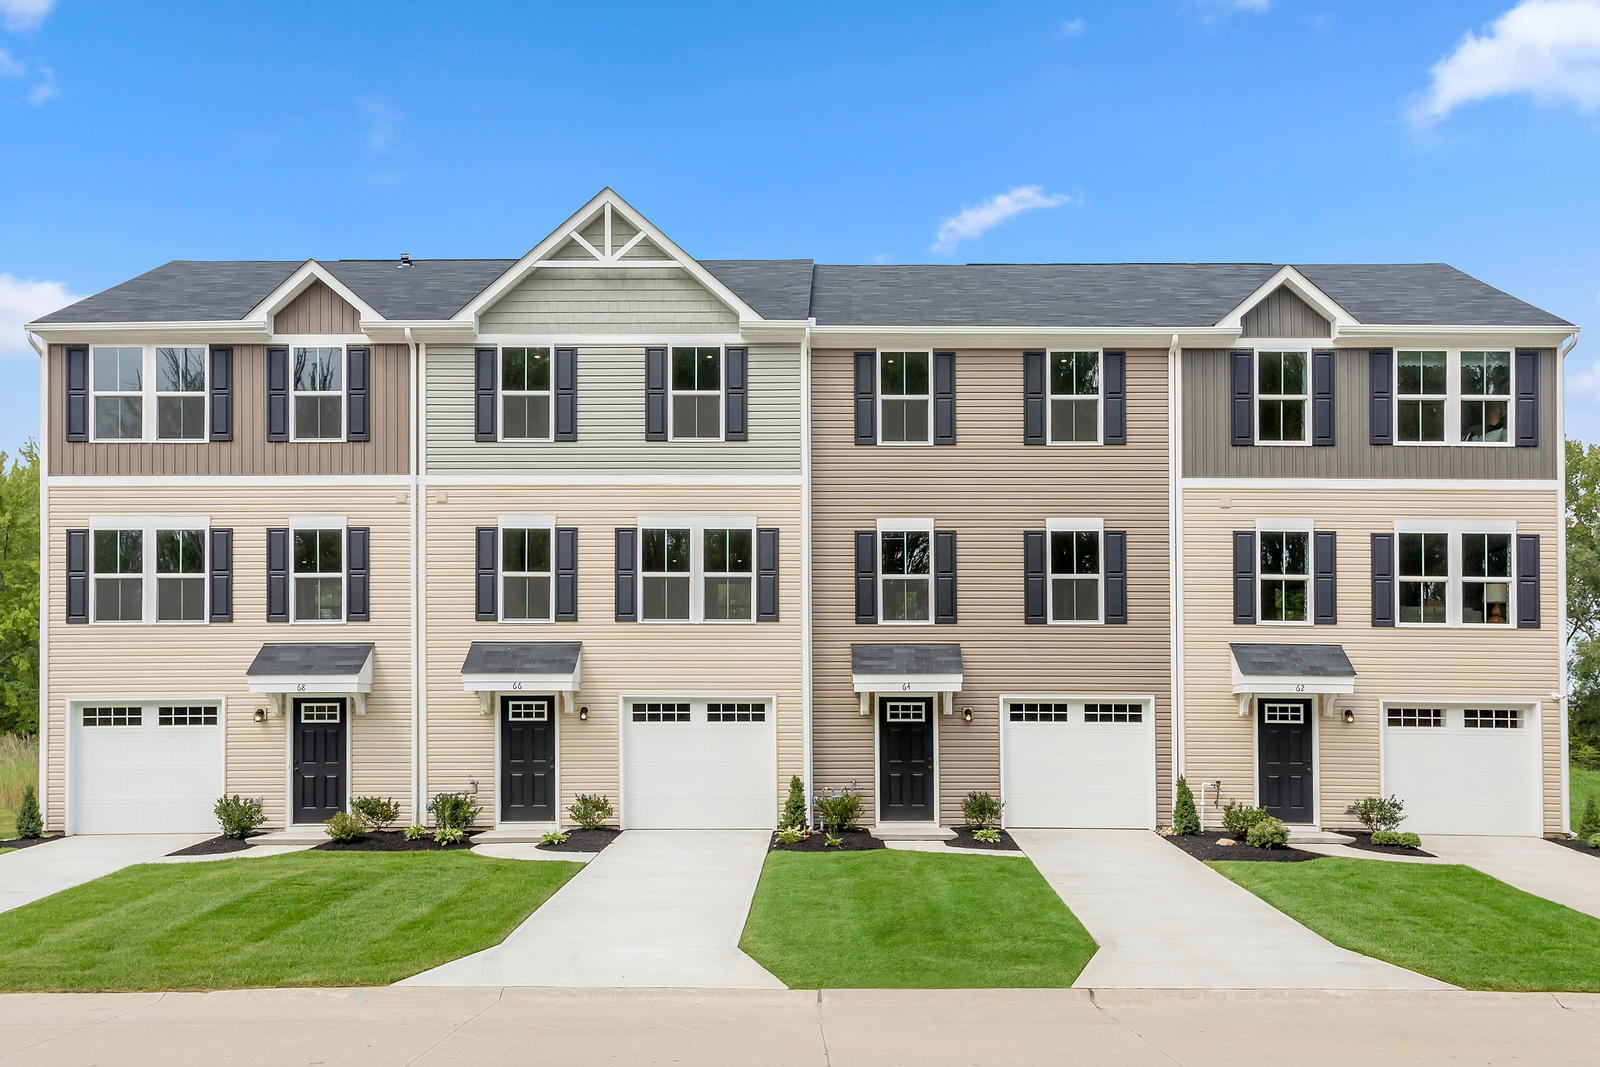 New Homes For Sale At Glynwood Forest In Fort Mill Sc Within The